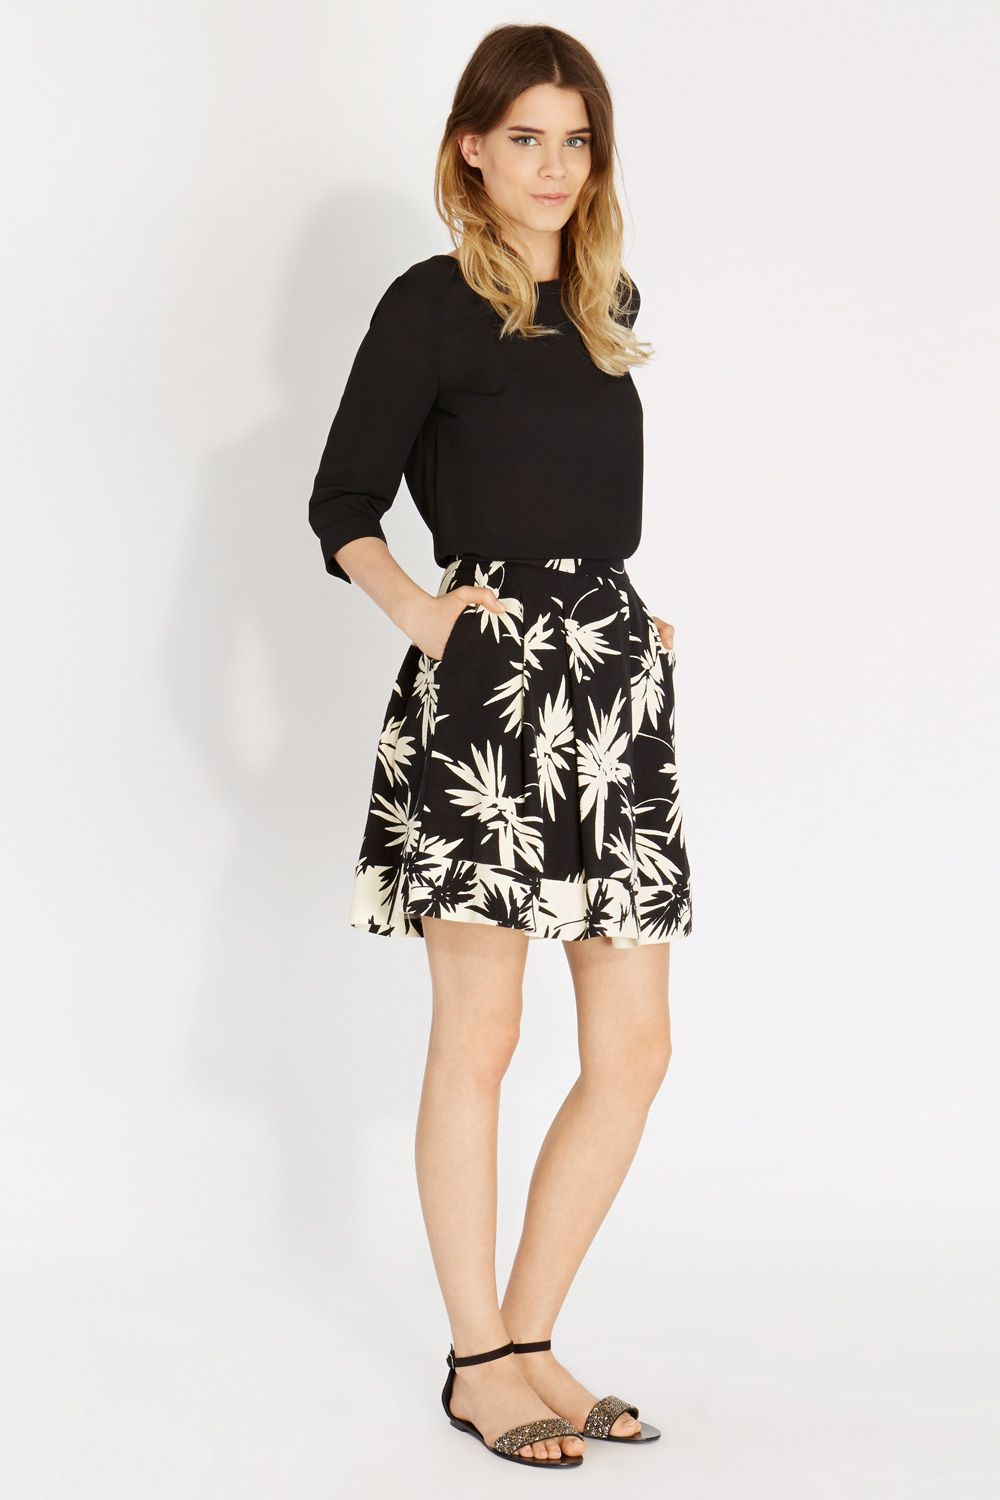 Bi formal woven skirt